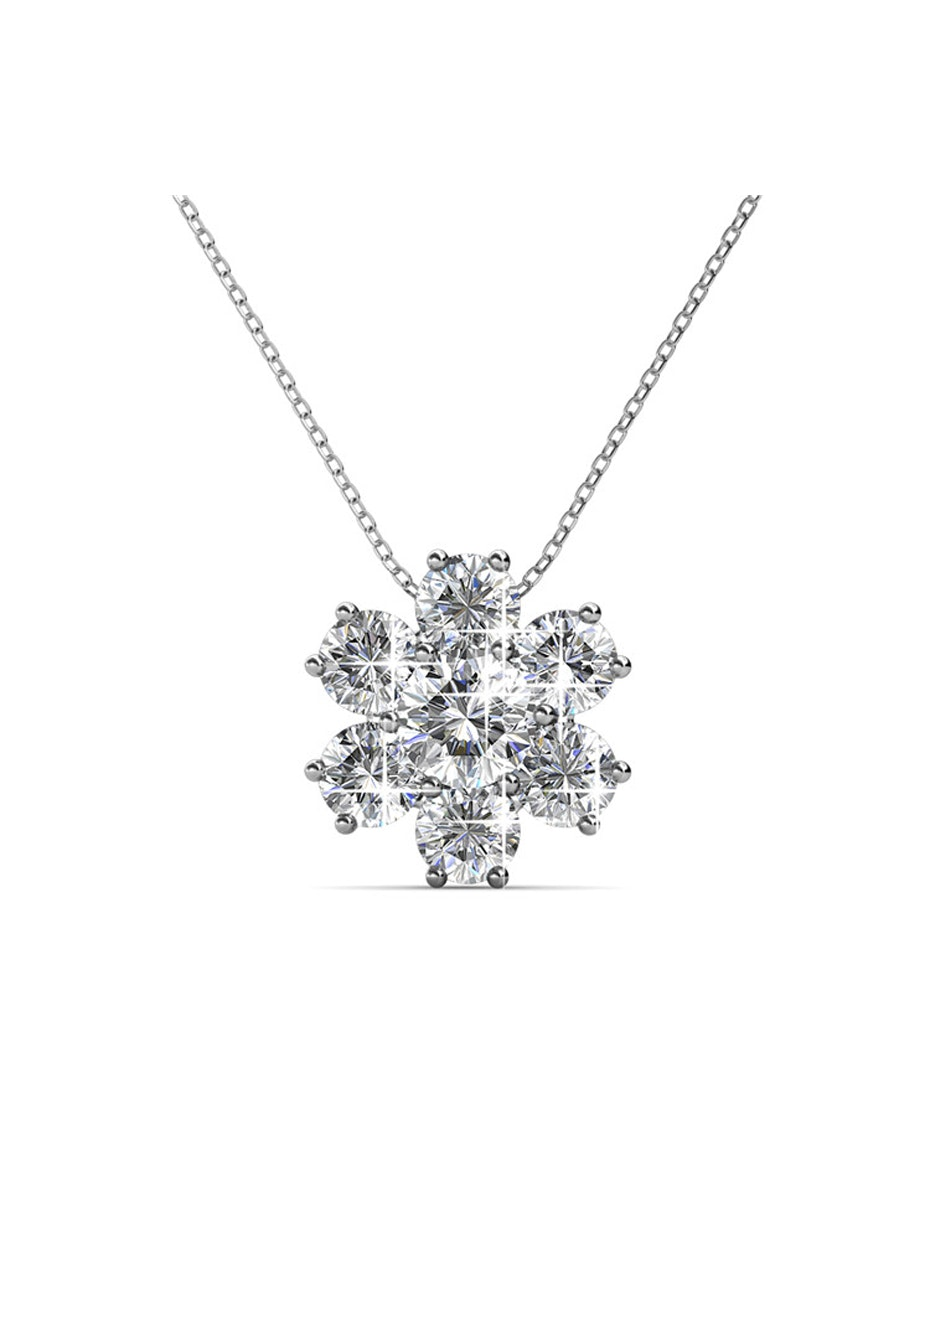 Ice Castle Pendant Necklace Embellished with Crystals from Swarovski